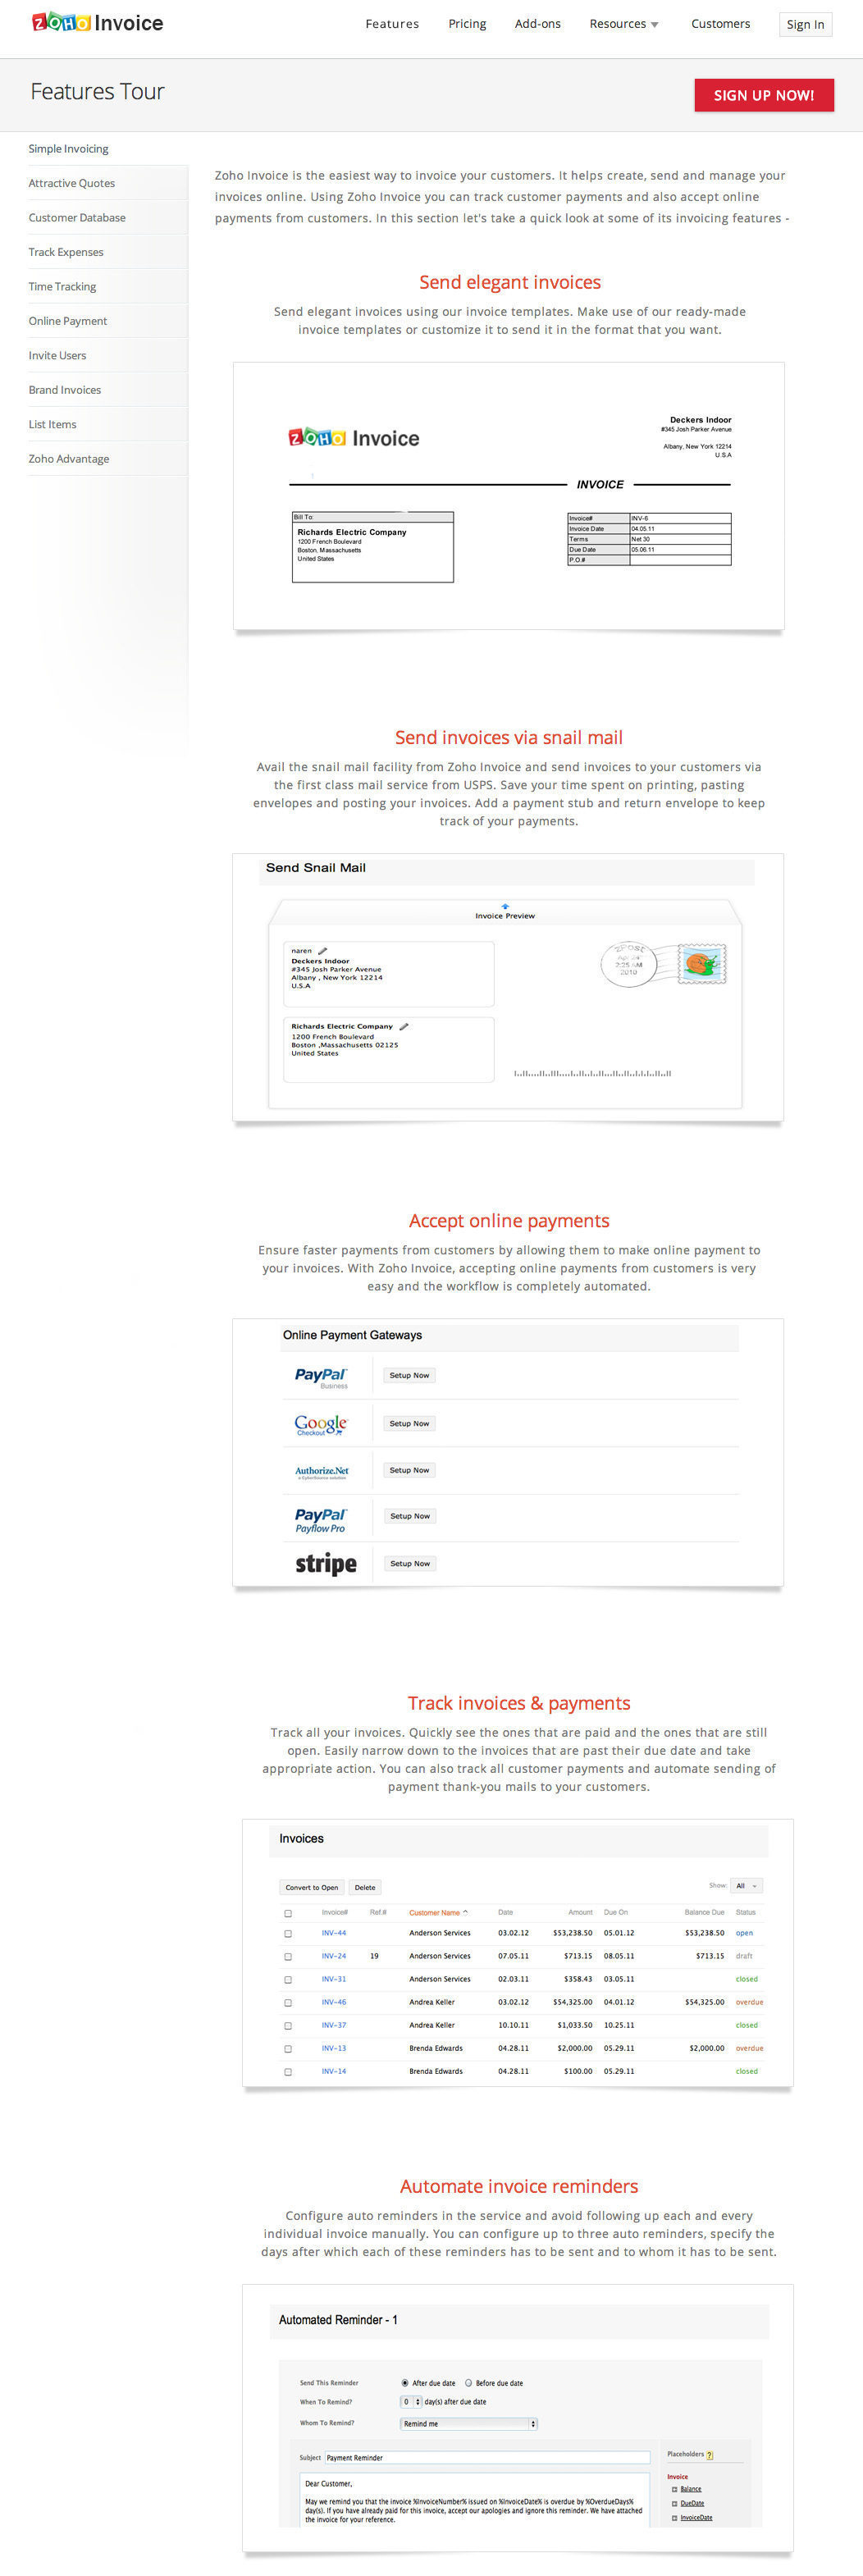 Breakupus  Inspiring Top  Complaints And Reviews About Zoho Invoice With Handsome Zoho Invoice Pricing Zoho Invoice  Simple Invoicing  With Delightful Free Sales Invoice Template Also How To Make Invoice On Word In Addition Invoice App Mac And True Car Invoice As Well As Blank Commercial Invoice Form Additionally Blank Invoice Form Pdf From Consumeraffairscom With Breakupus  Handsome Top  Complaints And Reviews About Zoho Invoice With Delightful Zoho Invoice Pricing Zoho Invoice  Simple Invoicing  And Inspiring Free Sales Invoice Template Also How To Make Invoice On Word In Addition Invoice App Mac From Consumeraffairscom